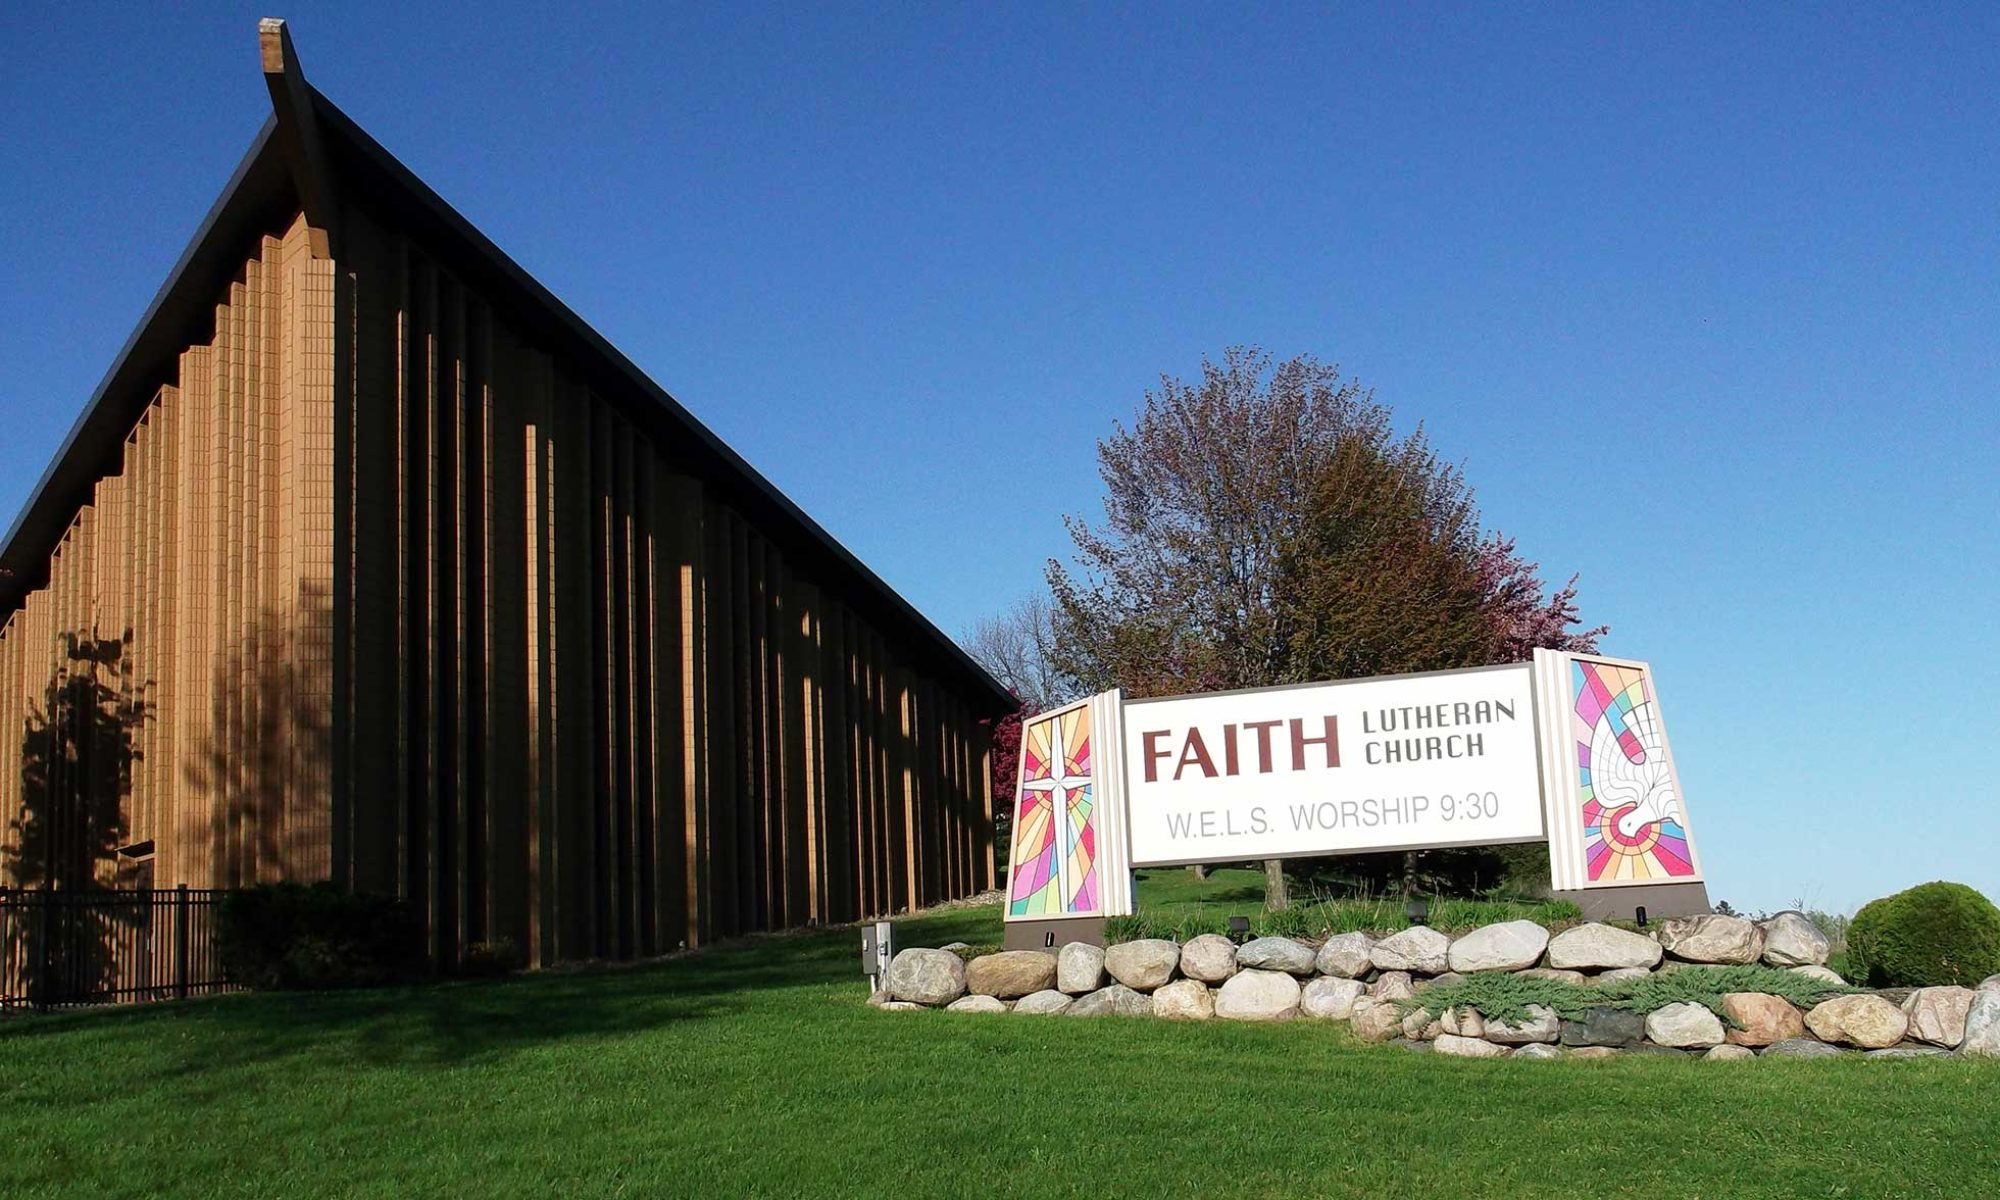 Faith Lutheran Church